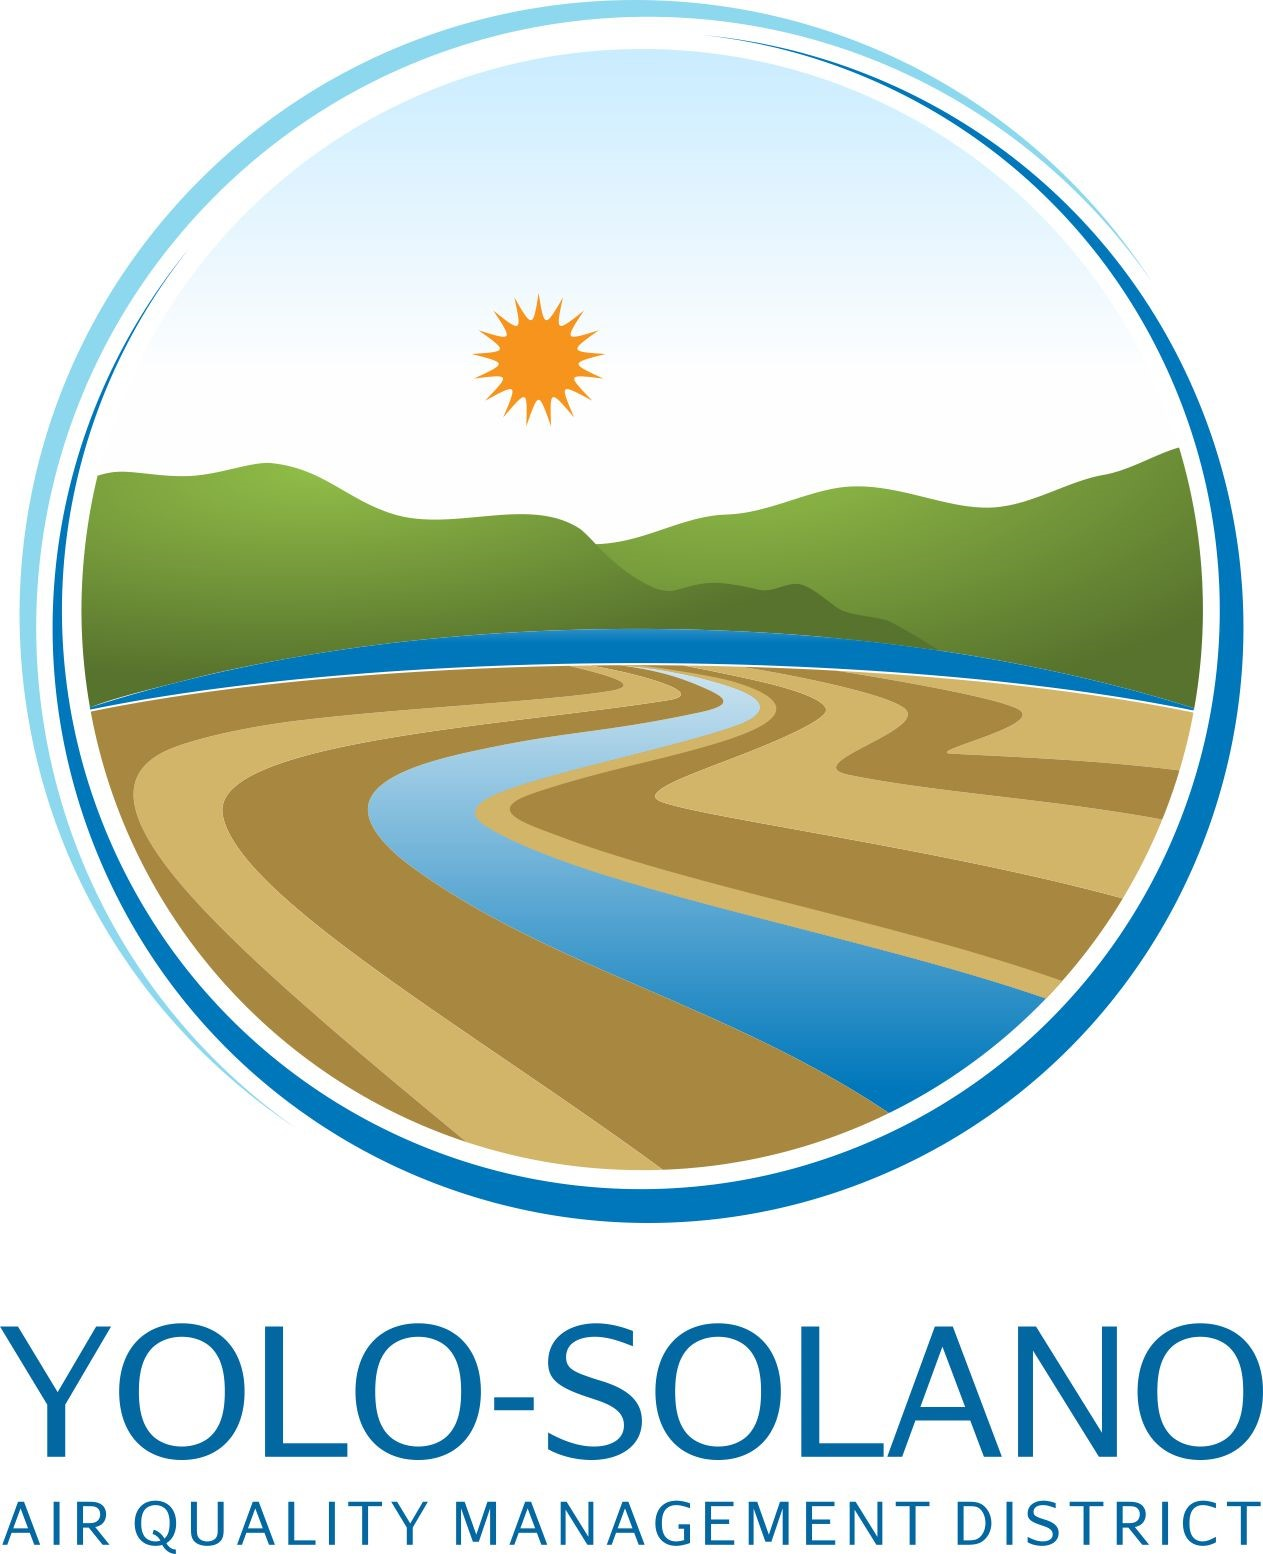 Yolo Solano Air Quality Management District logo